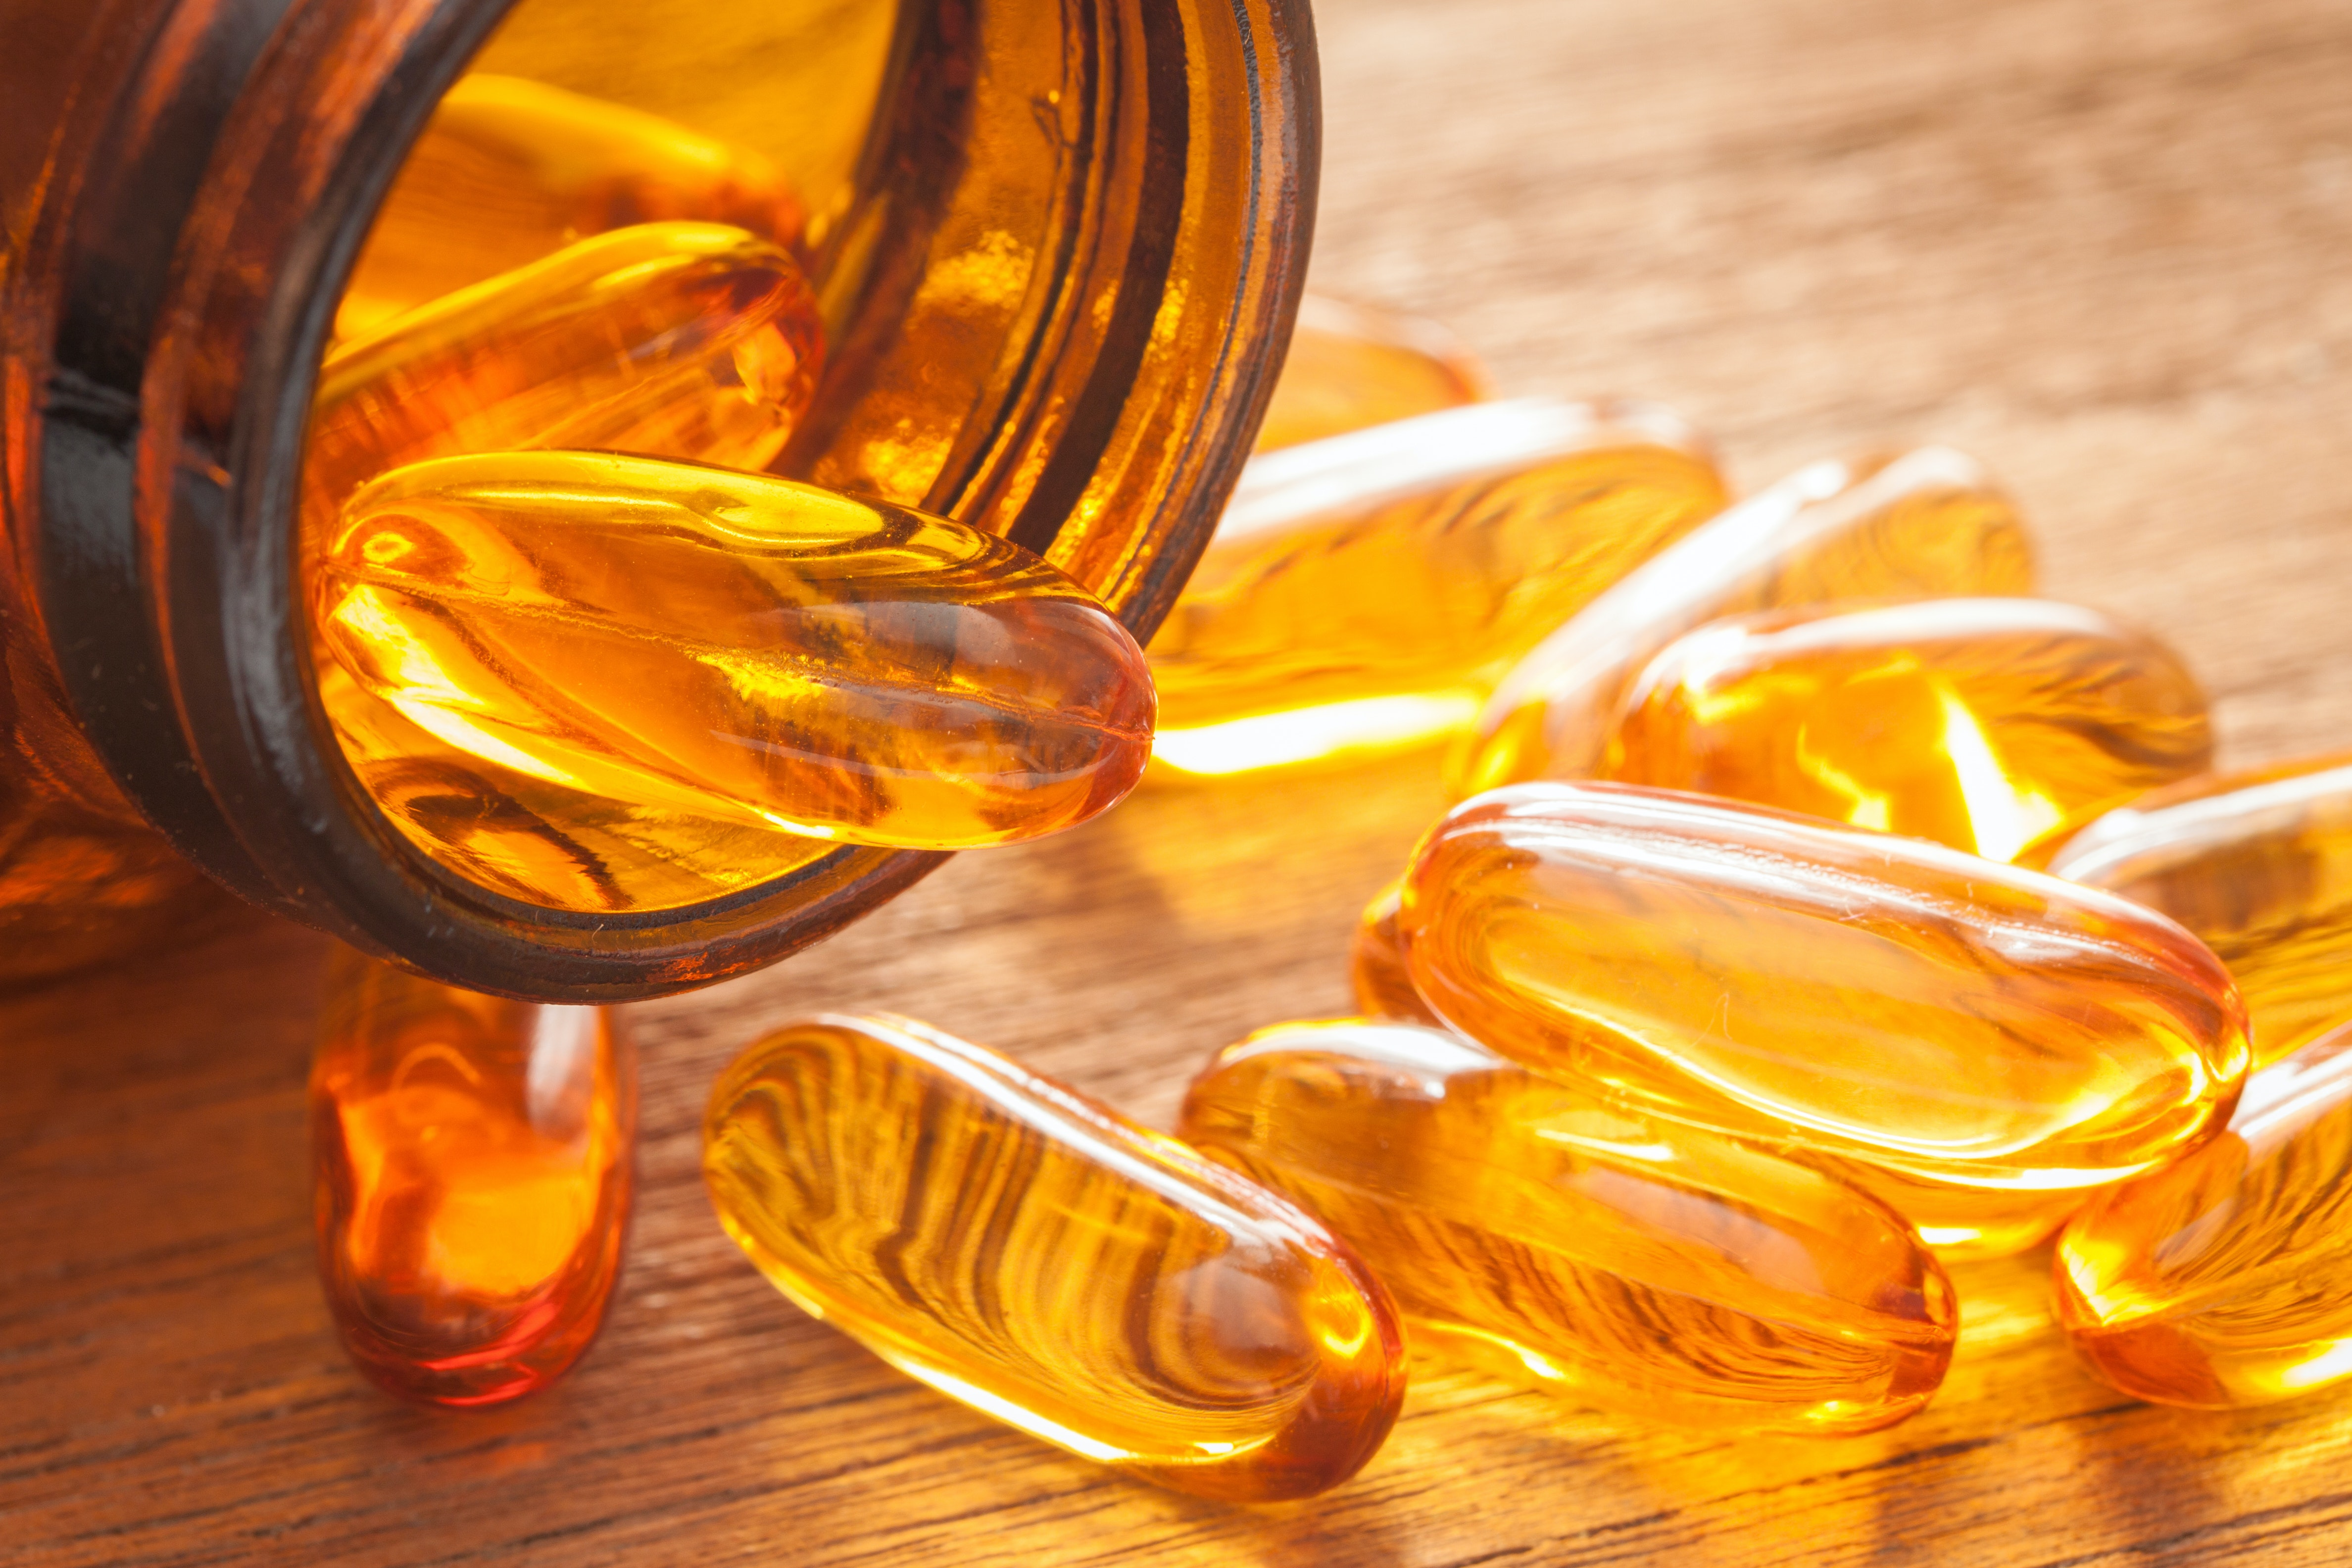 The Benefits Of Fish Oil According To Experts